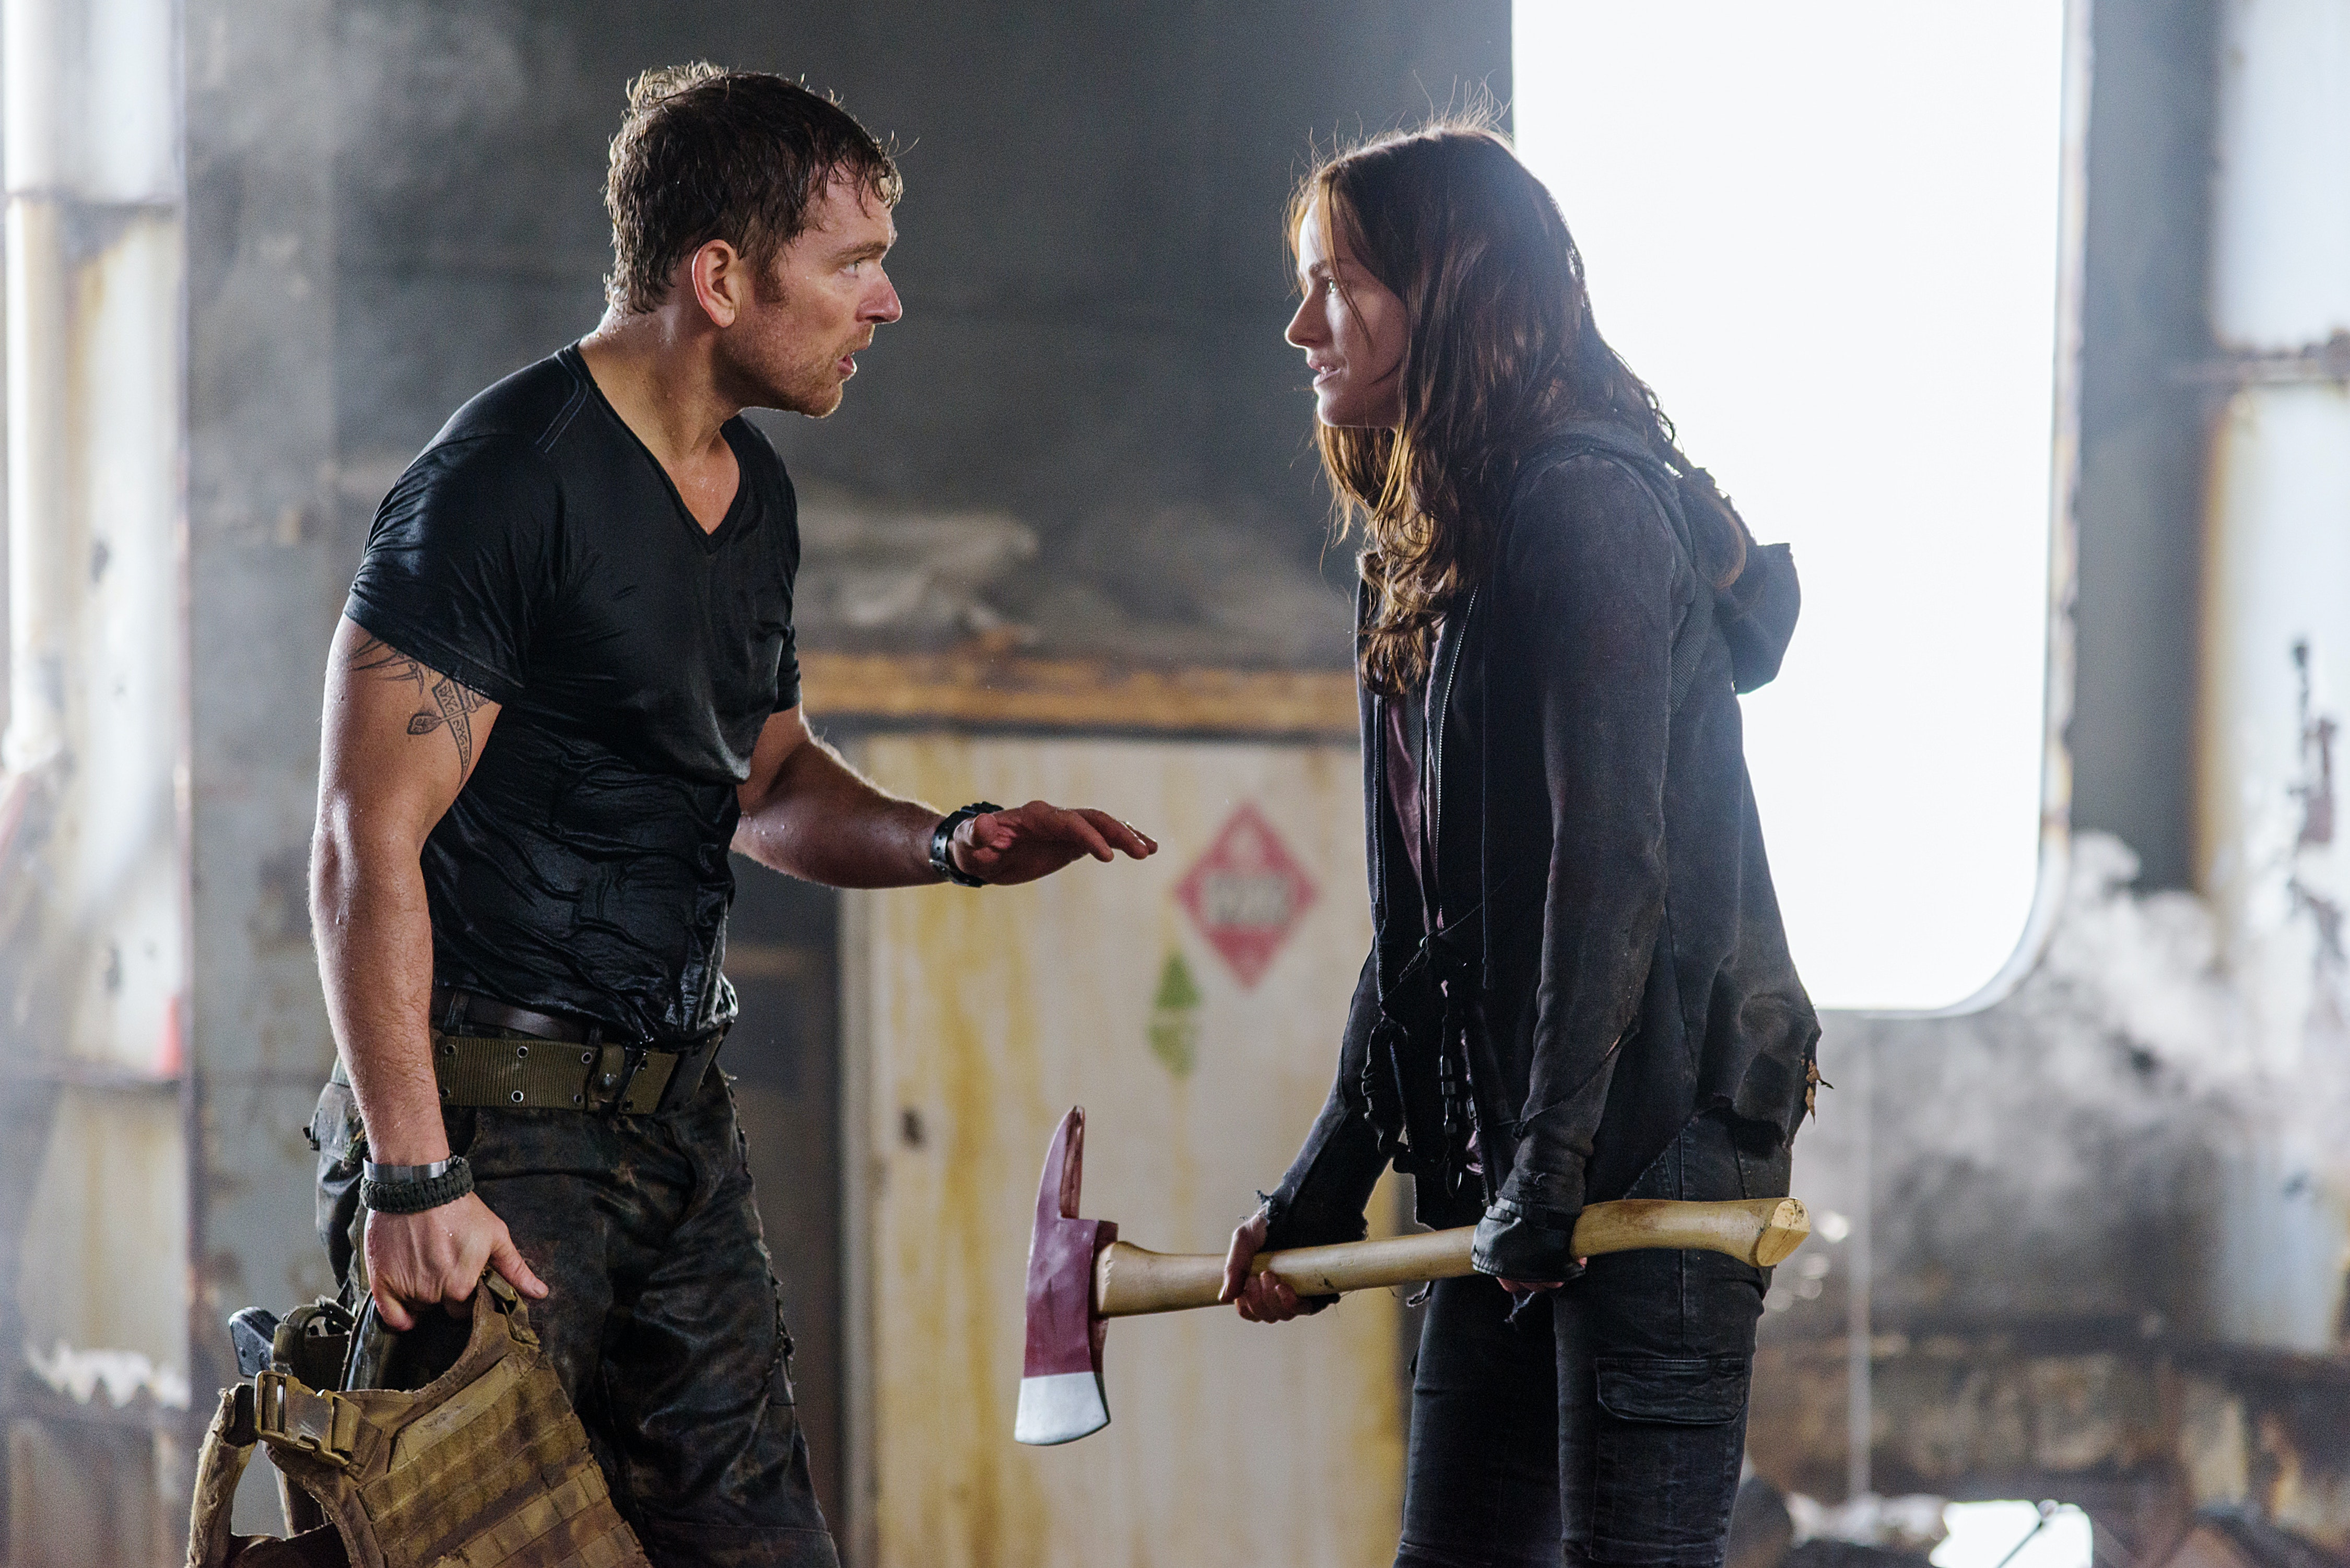 Jonathan Scarfe as Axel and Kelly Overton as Vanessa